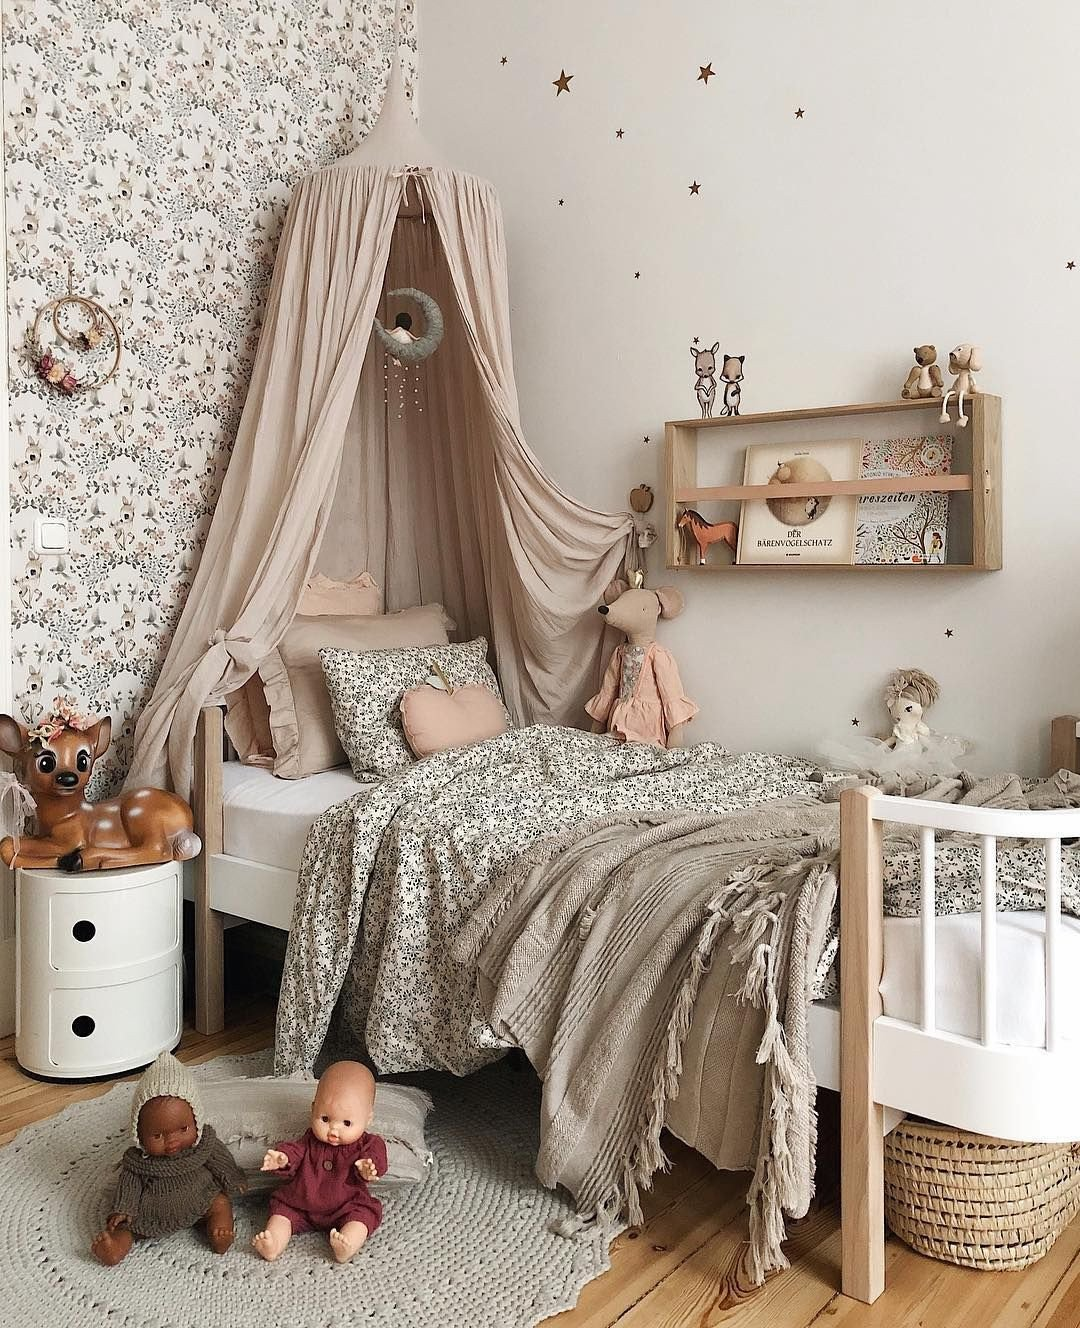 Kids Bedroom for Girls Fresh Not Your Usual top 10 Kids Room Trends for 2019